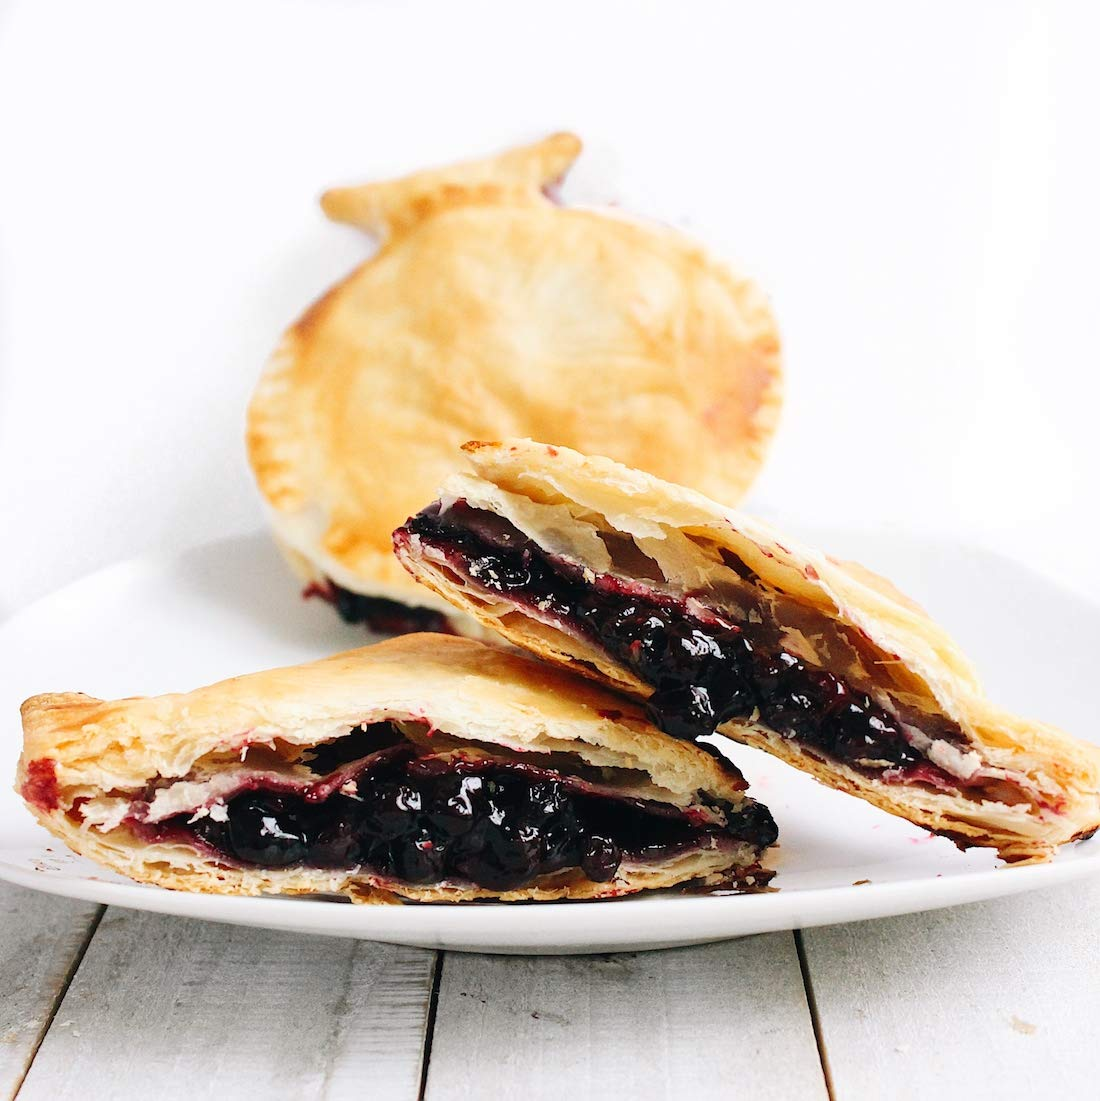 Mamie's 12 Pack Melt-in-Your-Mouth Single Serving Blueberry Pies, Individually Packaged 4.5oz Pocket Pies, Preservative Free, Shipped Frozen and Ready to Bake, Made in USA. by Mamie's Pies (Image #2)